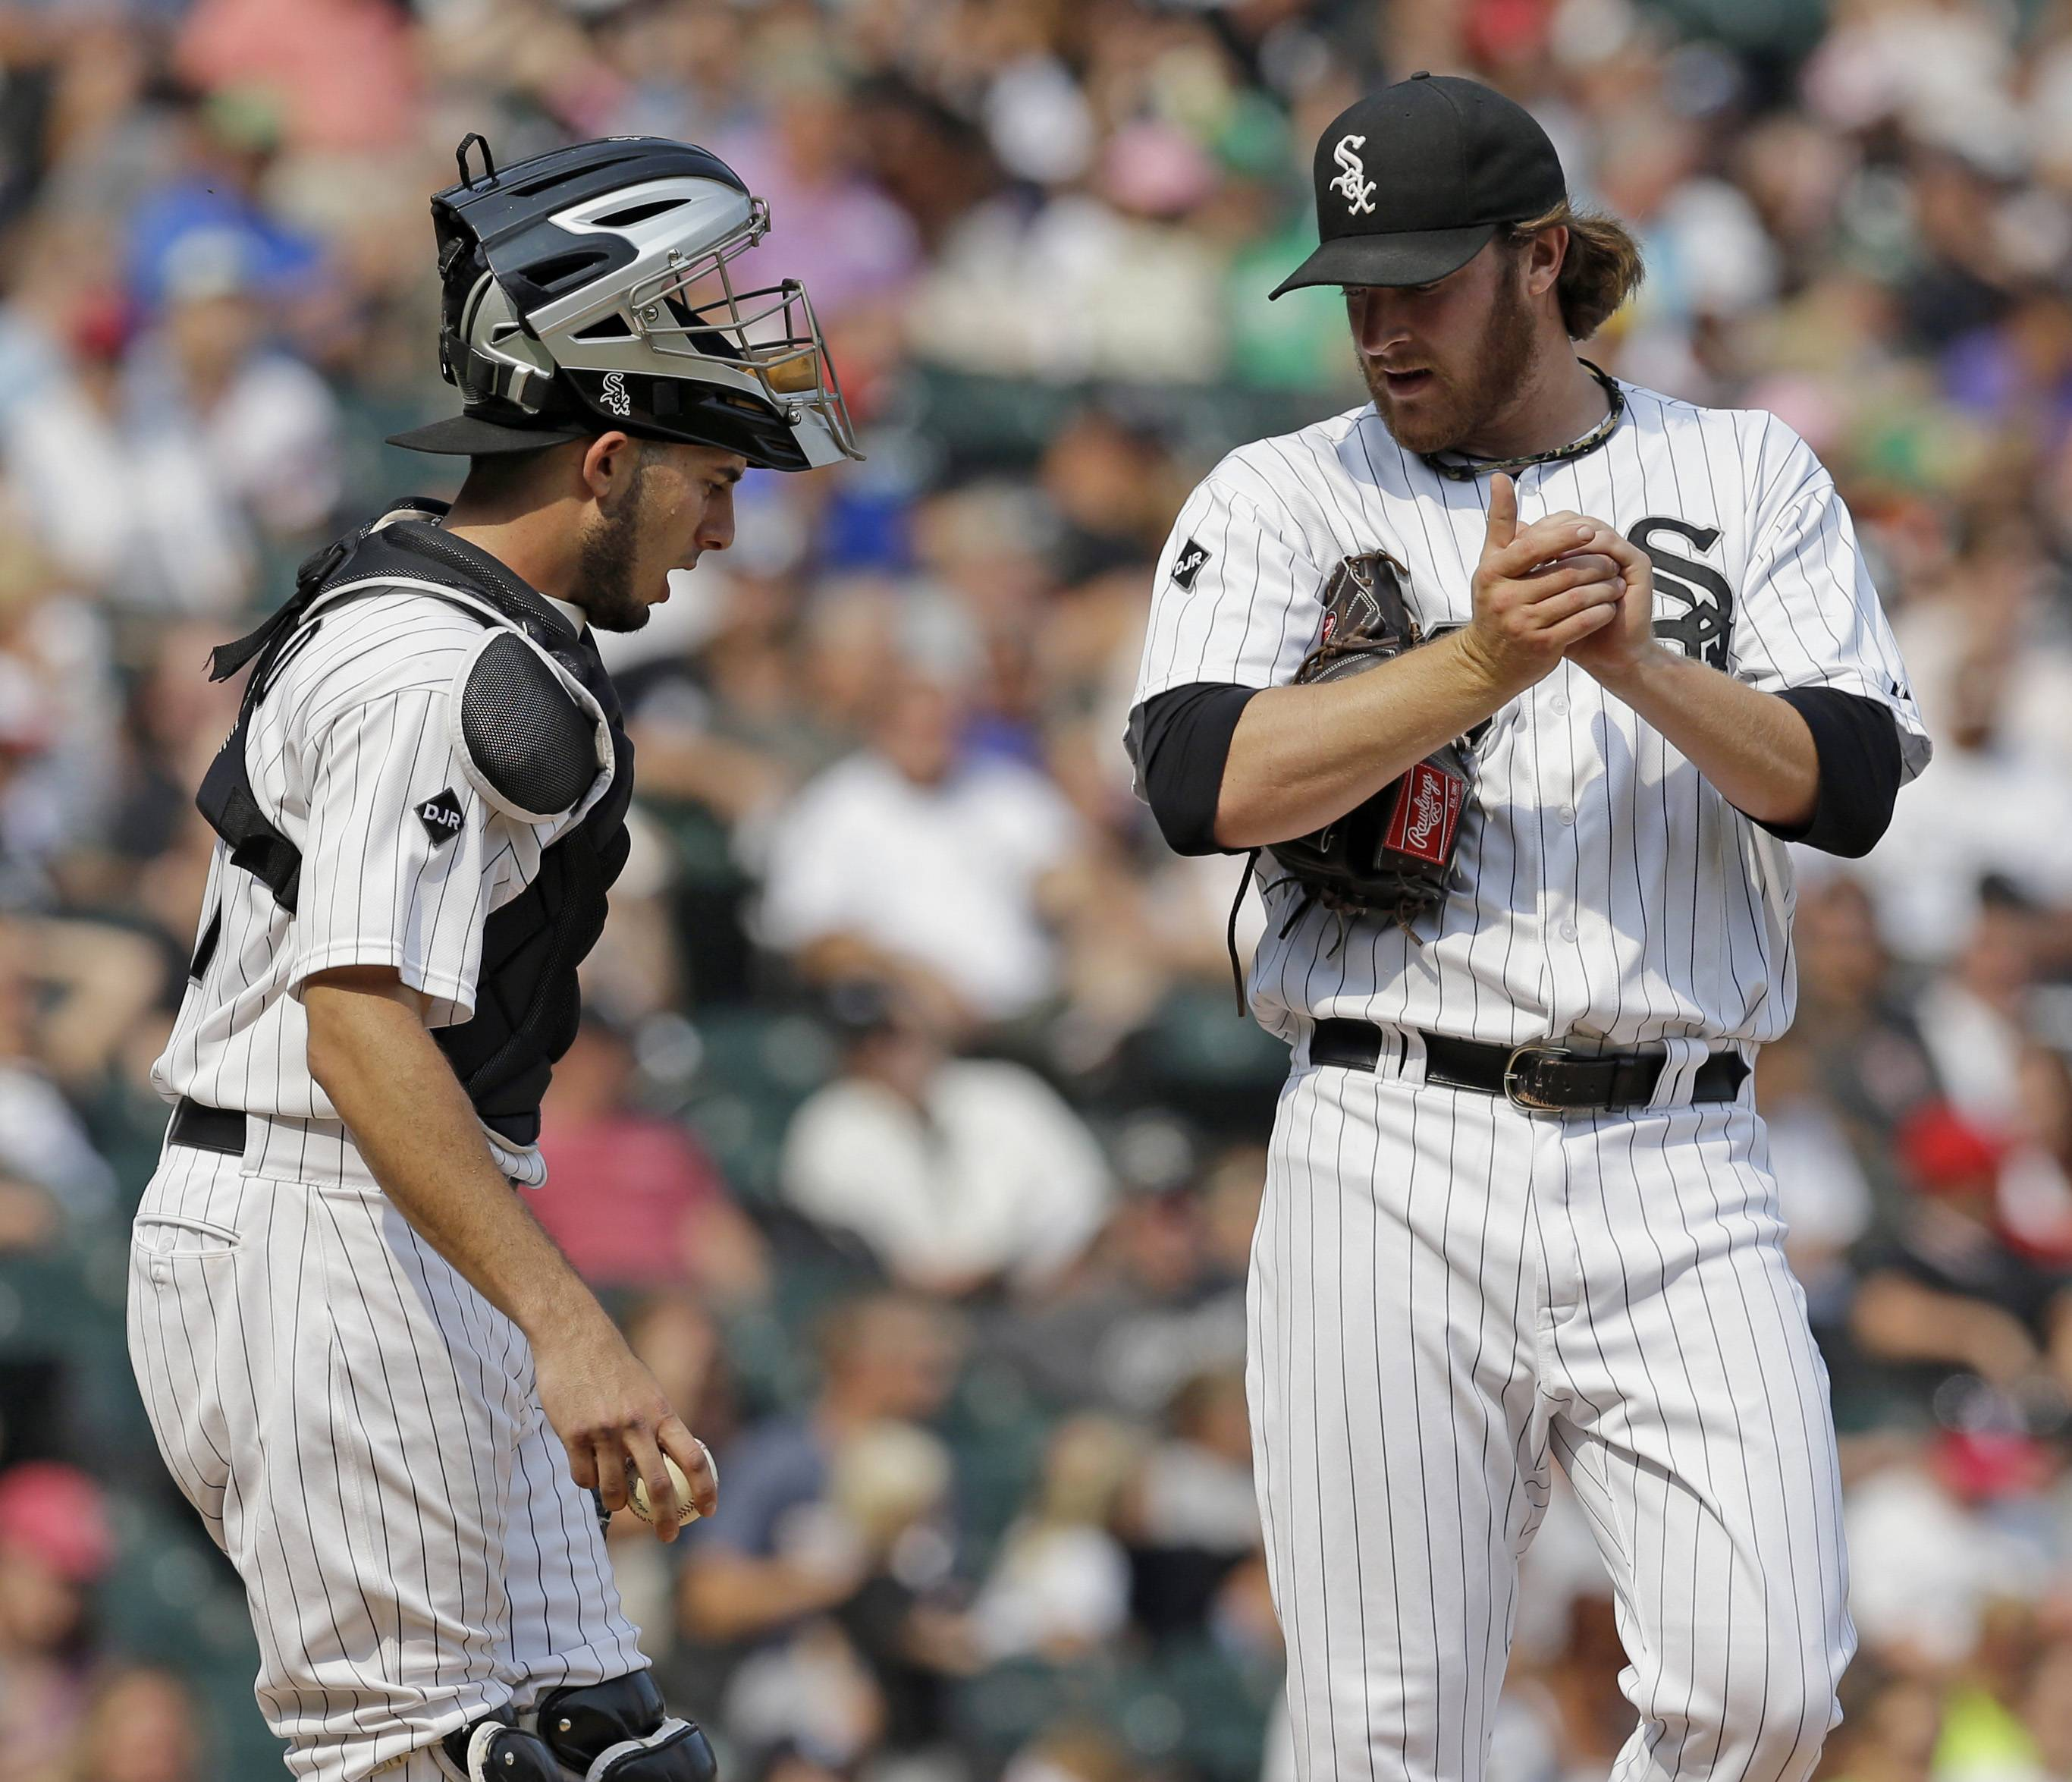 White Sox catcher Adrian Nieto, left, talks to relief pitcher Daniel Webb during the seventh inning of a baseball game against the Houston Astros in Chicago on Sunday, July 20, 2014.